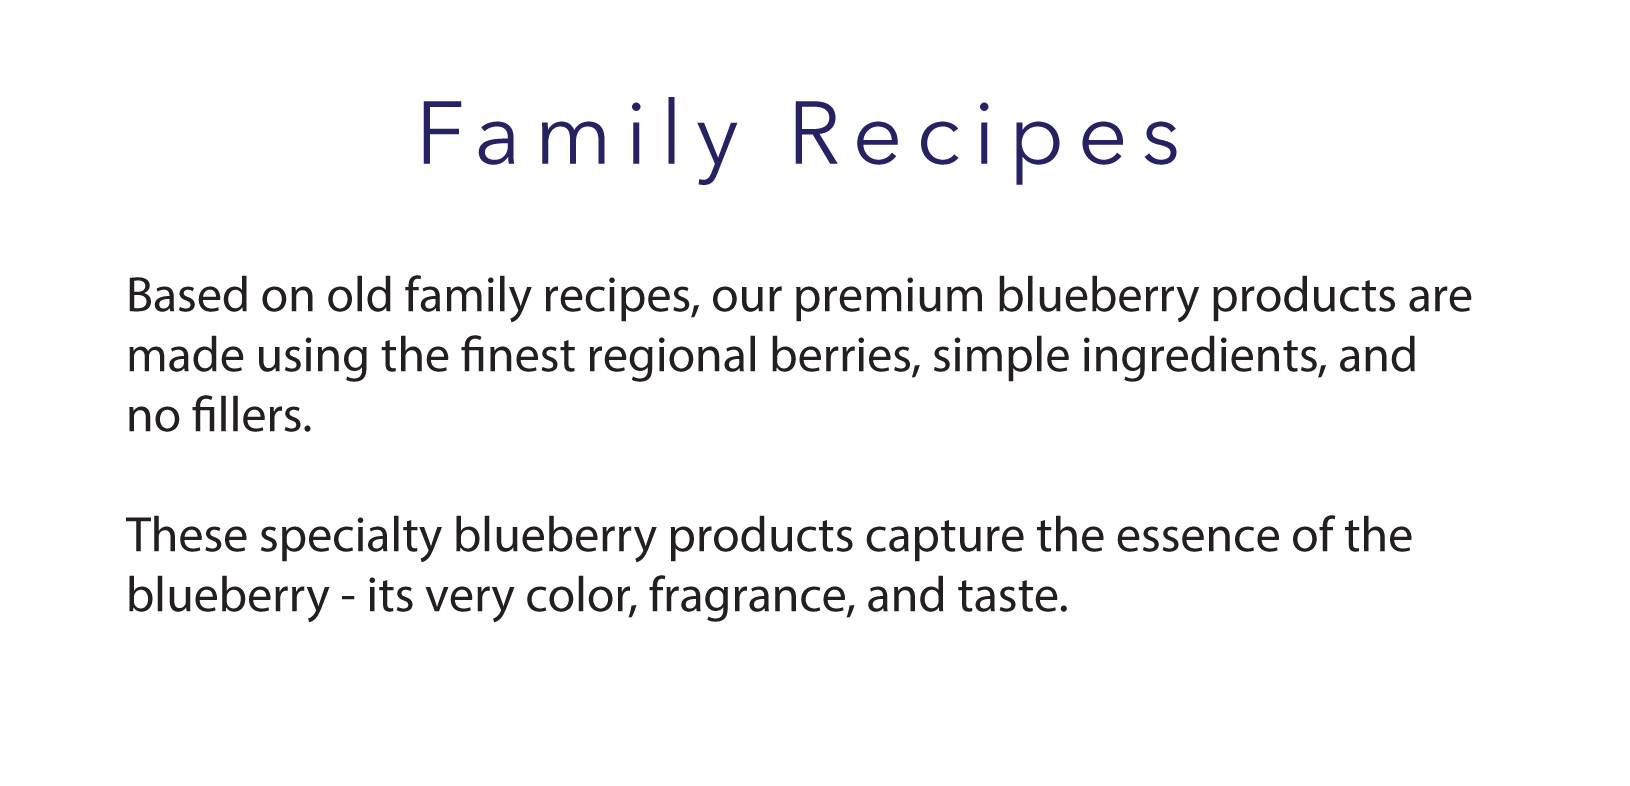 image_familyrecipes text.jpg